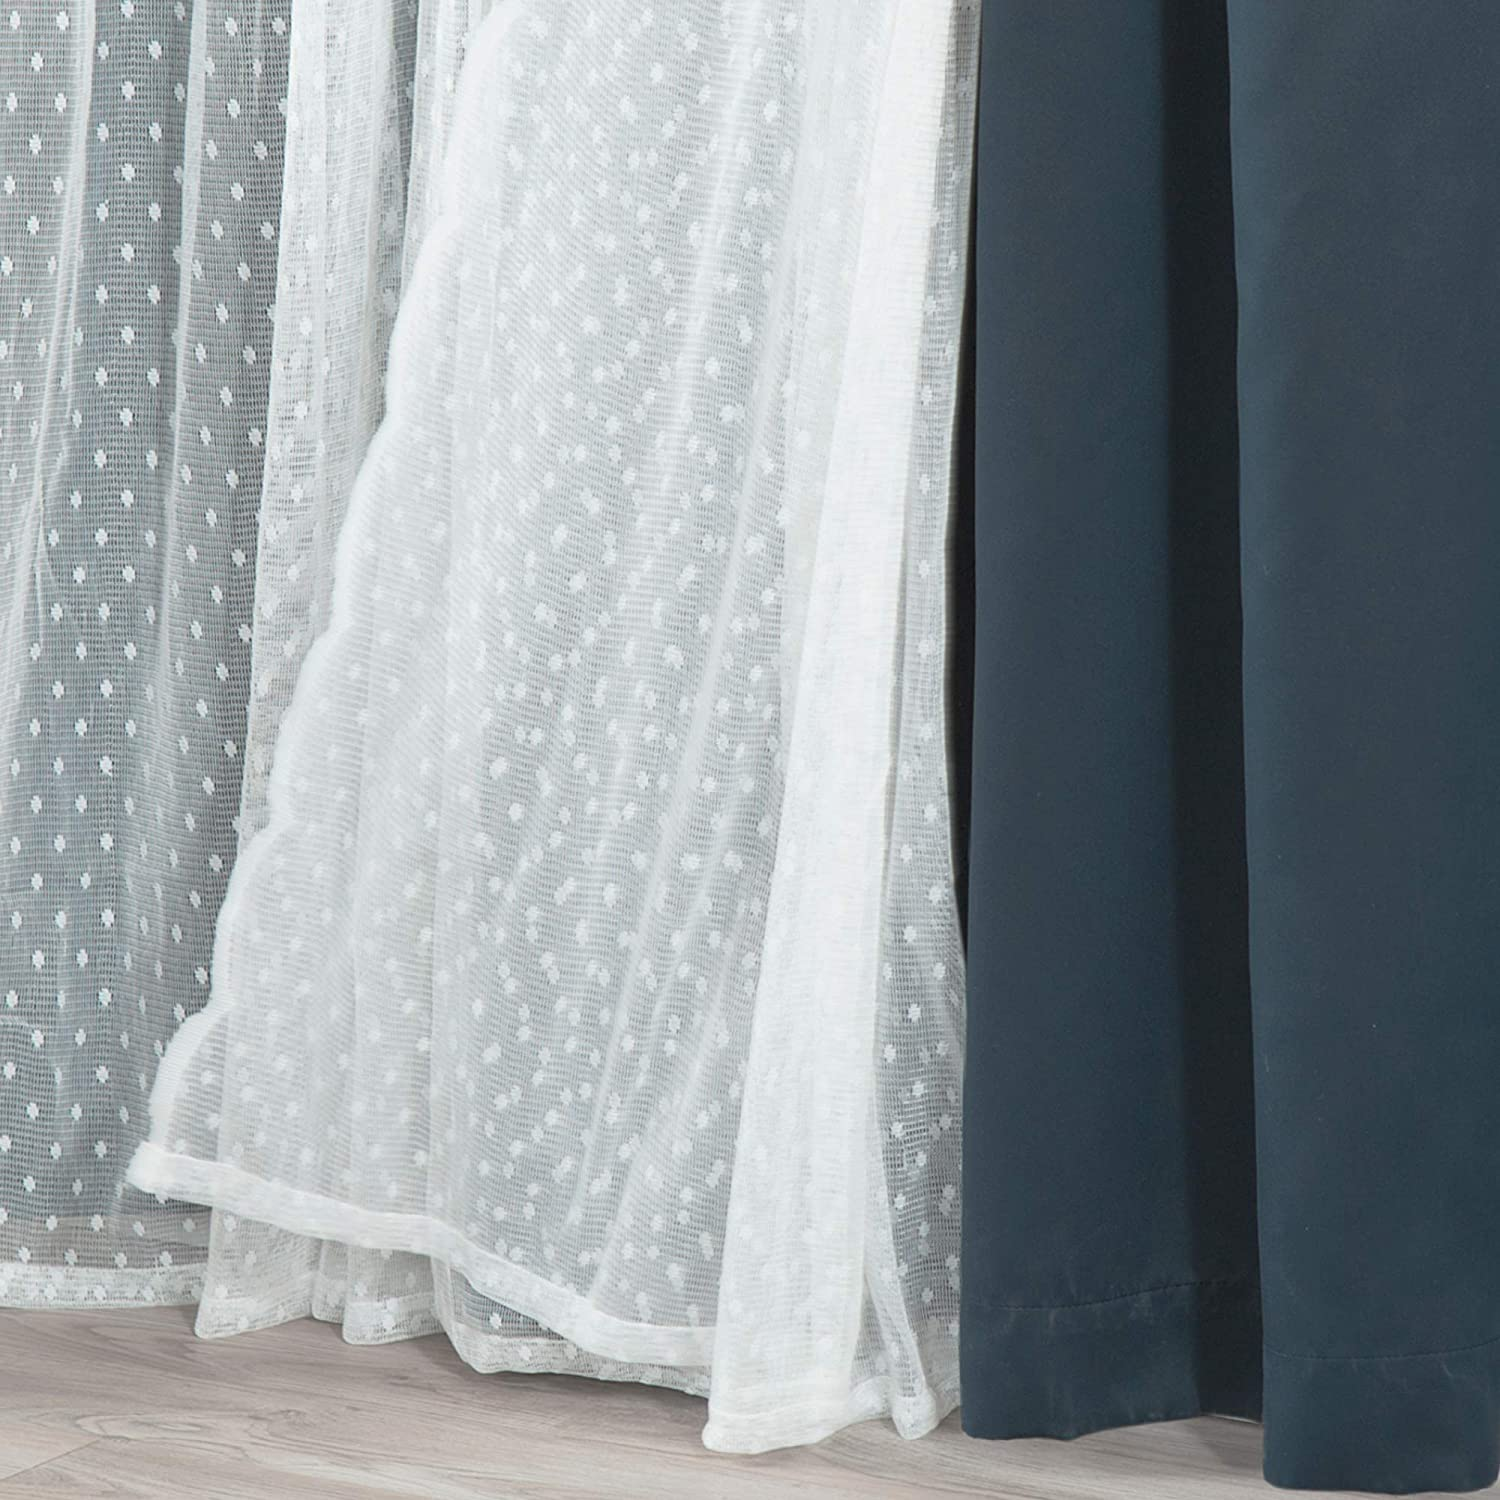 Best Home Fashion Mix and Match Wide Width Dotted Tulle Lace and Blackout 2 Piece (One Blackout, One Tulle) Curtain Set – Antique Bronze Grommet Top (80